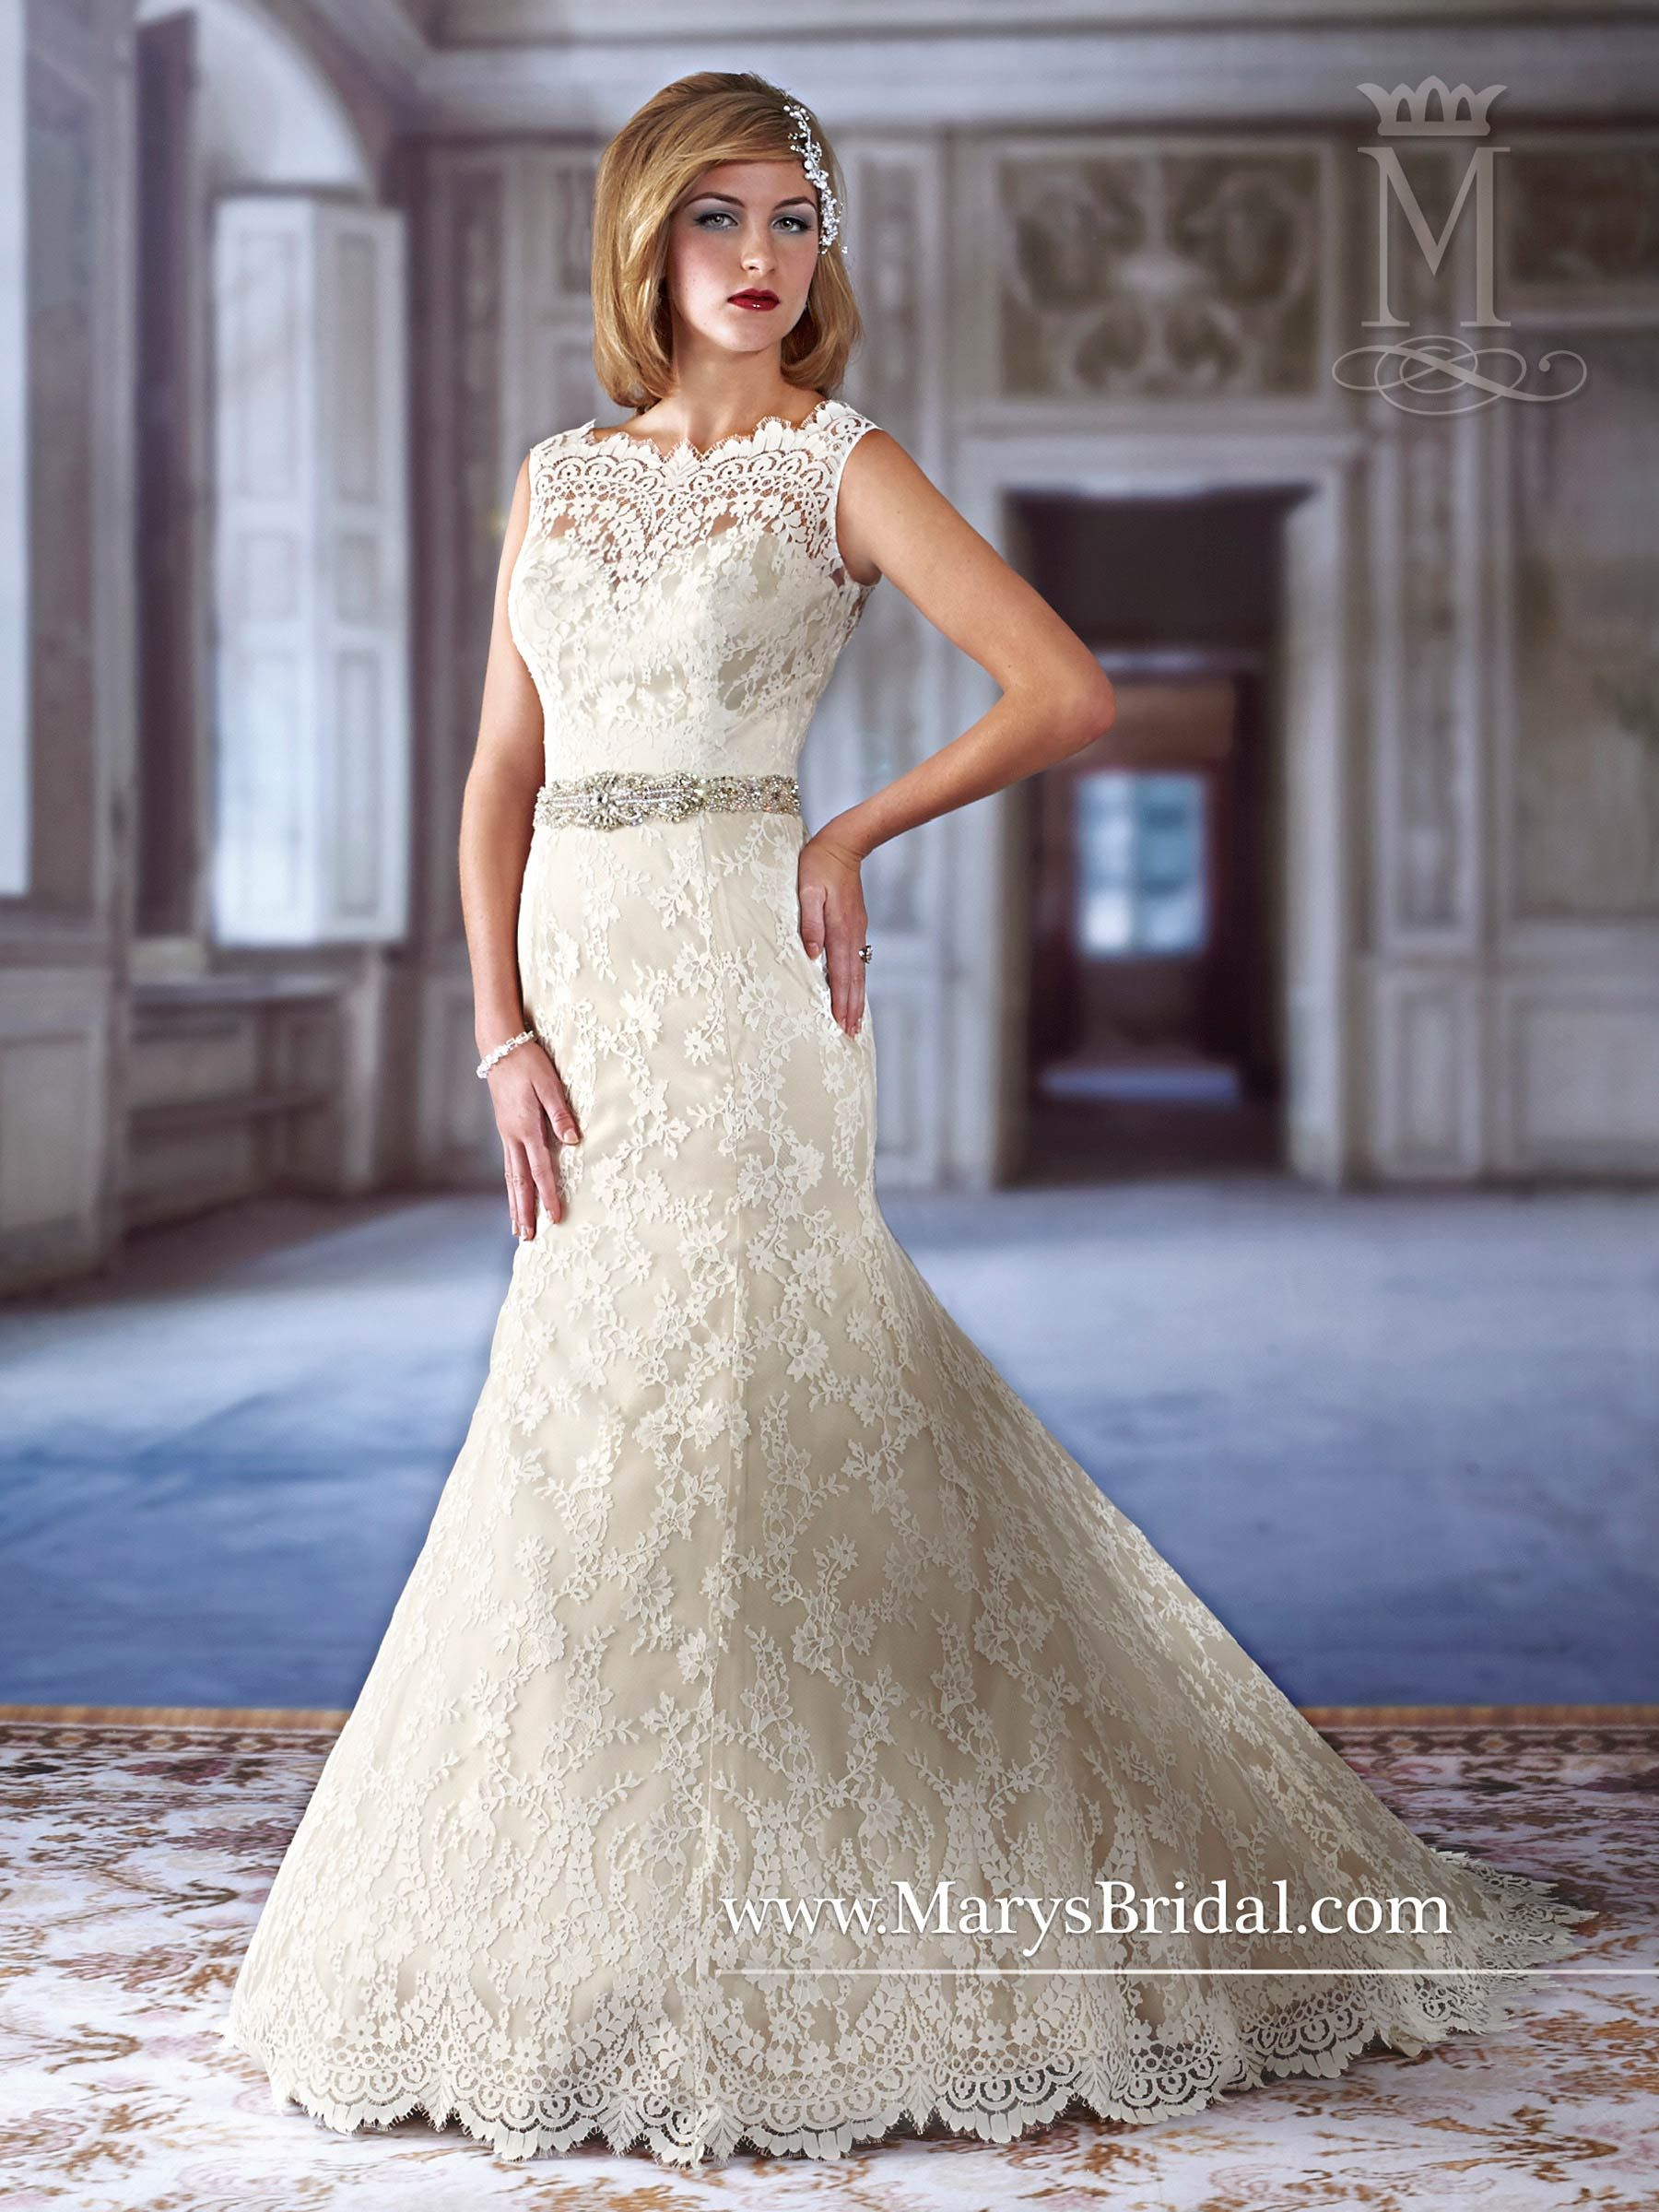 Wedding dress without train  Schiffli lace mermaid bridal gown with illusion jewel neckline and